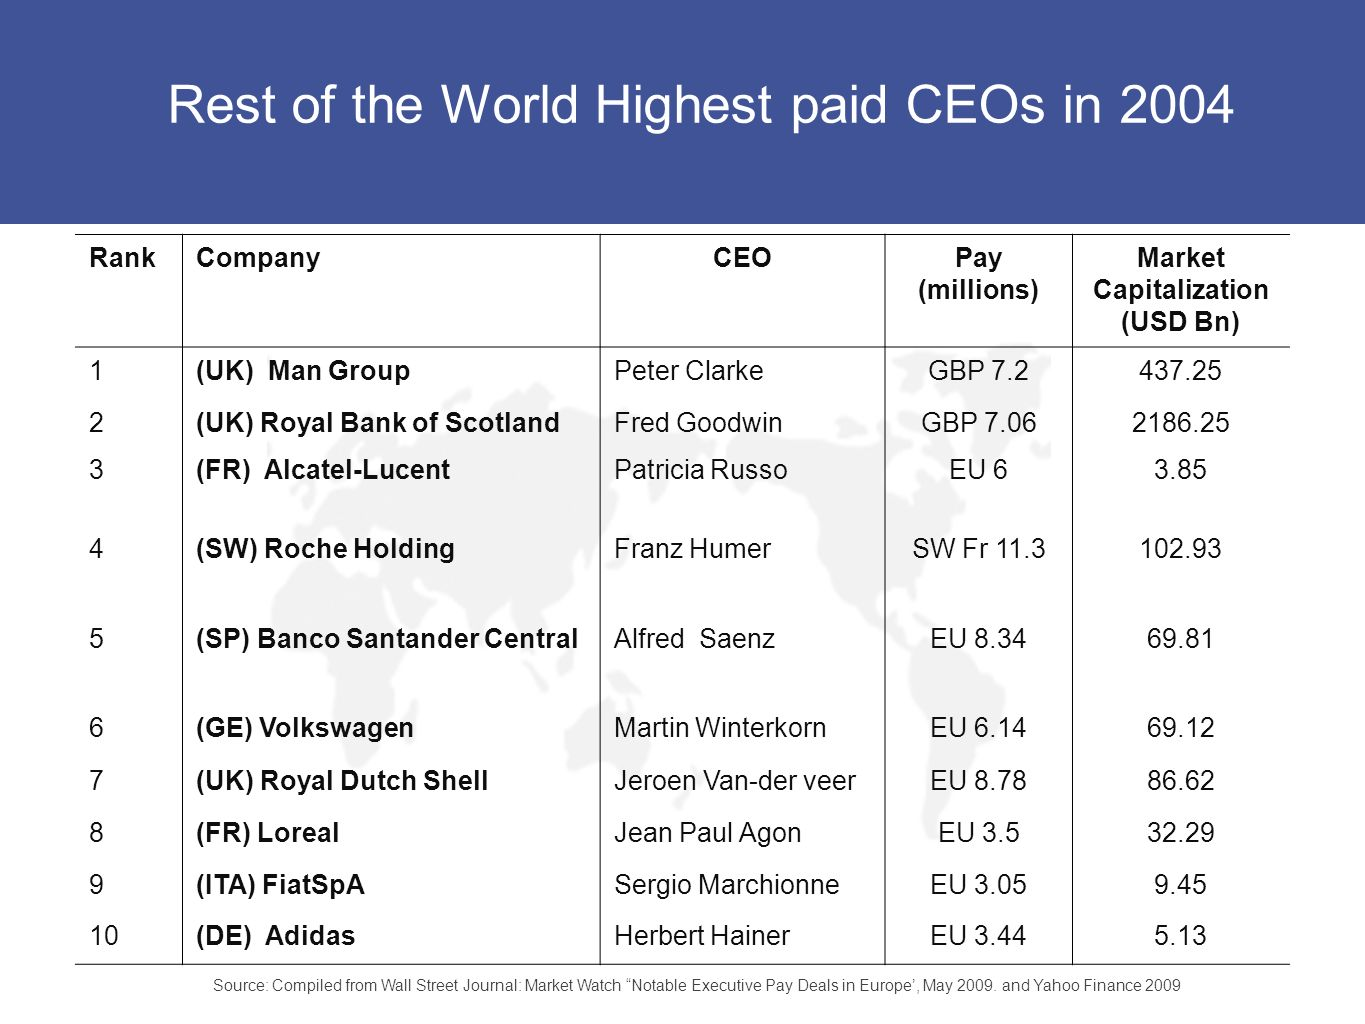 Rest of the World Highest paid CEOs in 2004